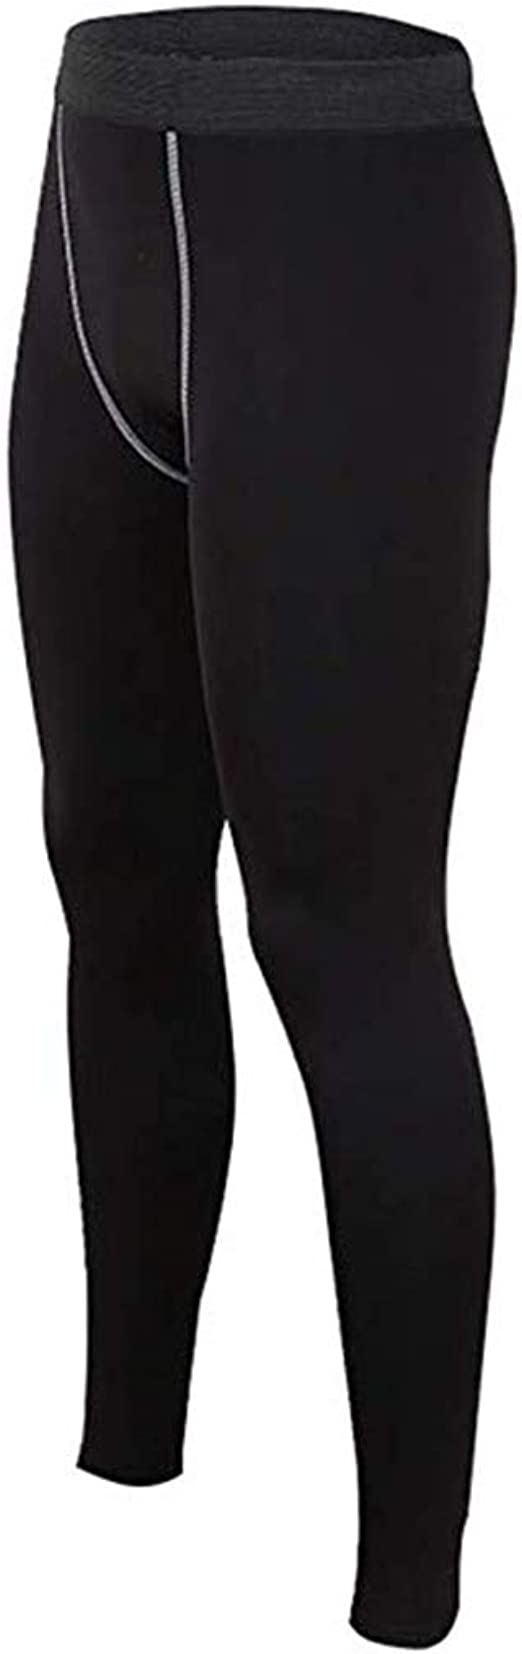 Men/'s Compression Tights Pants Shirt Skin Athletic Base Layers Wick Cool Dry Y47